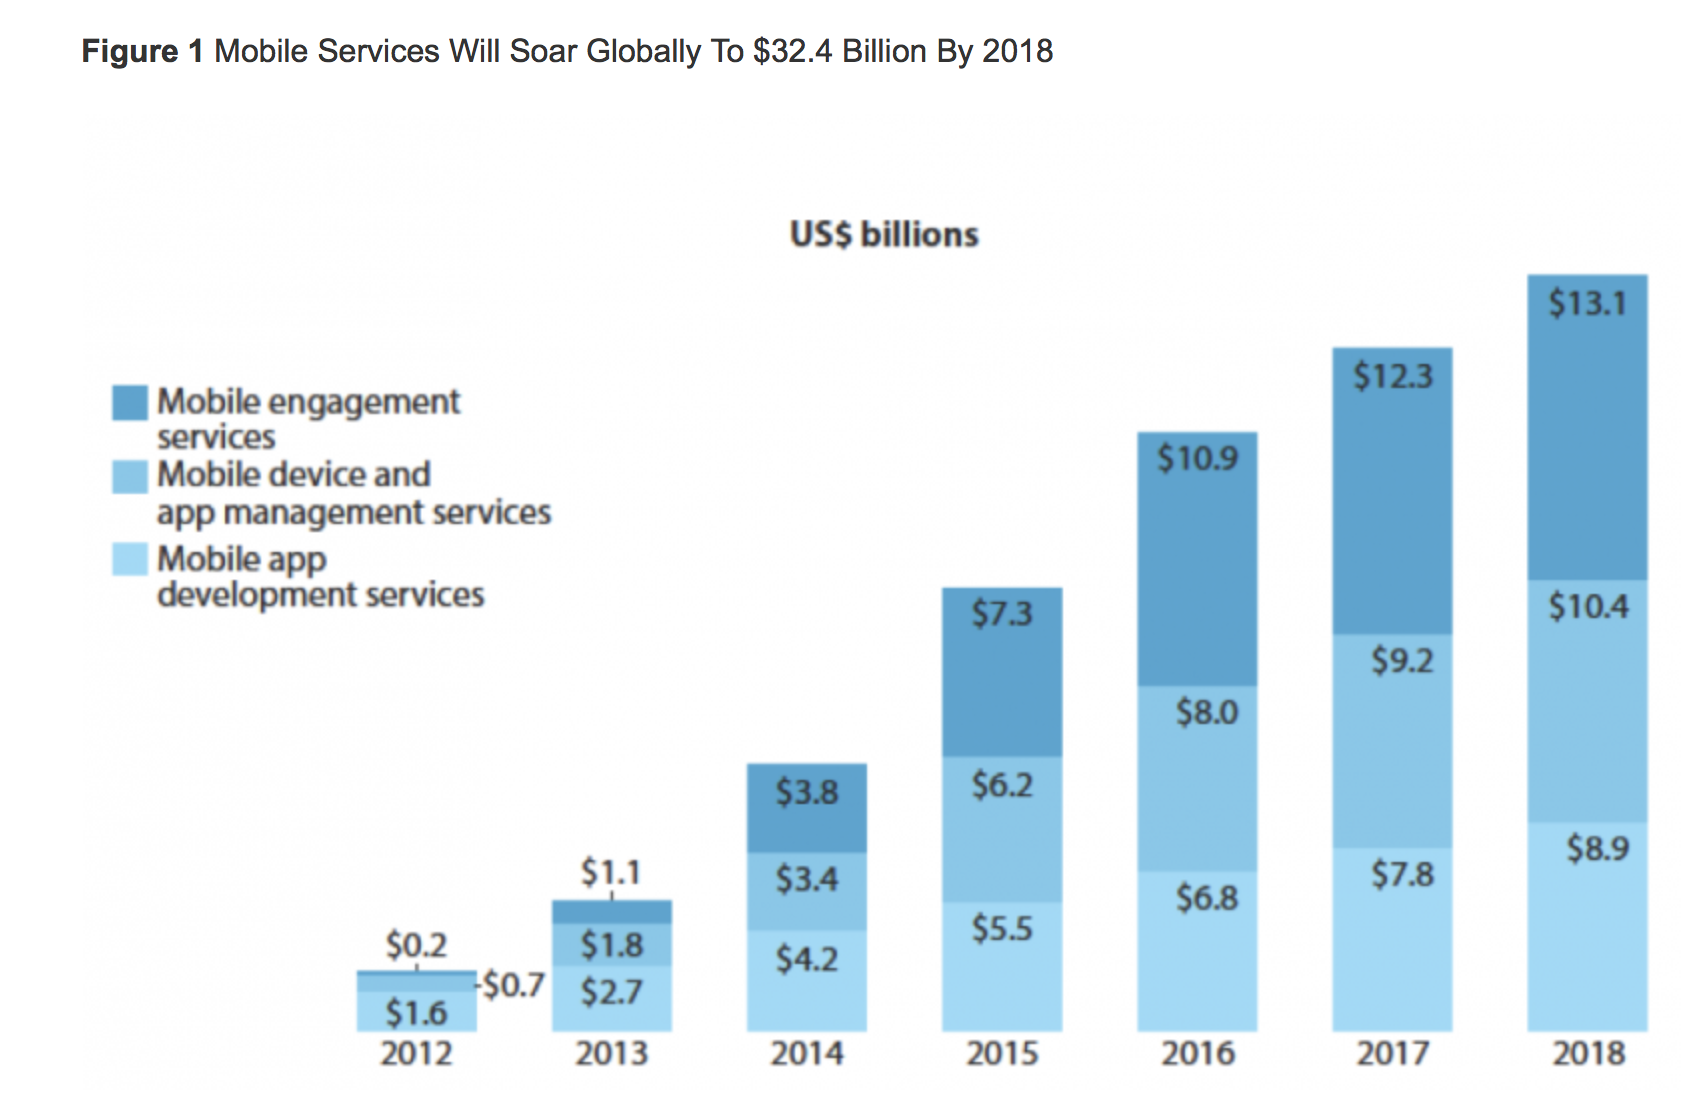 Mobile Services Will Soar Globally To $32.4 Billion By 2018